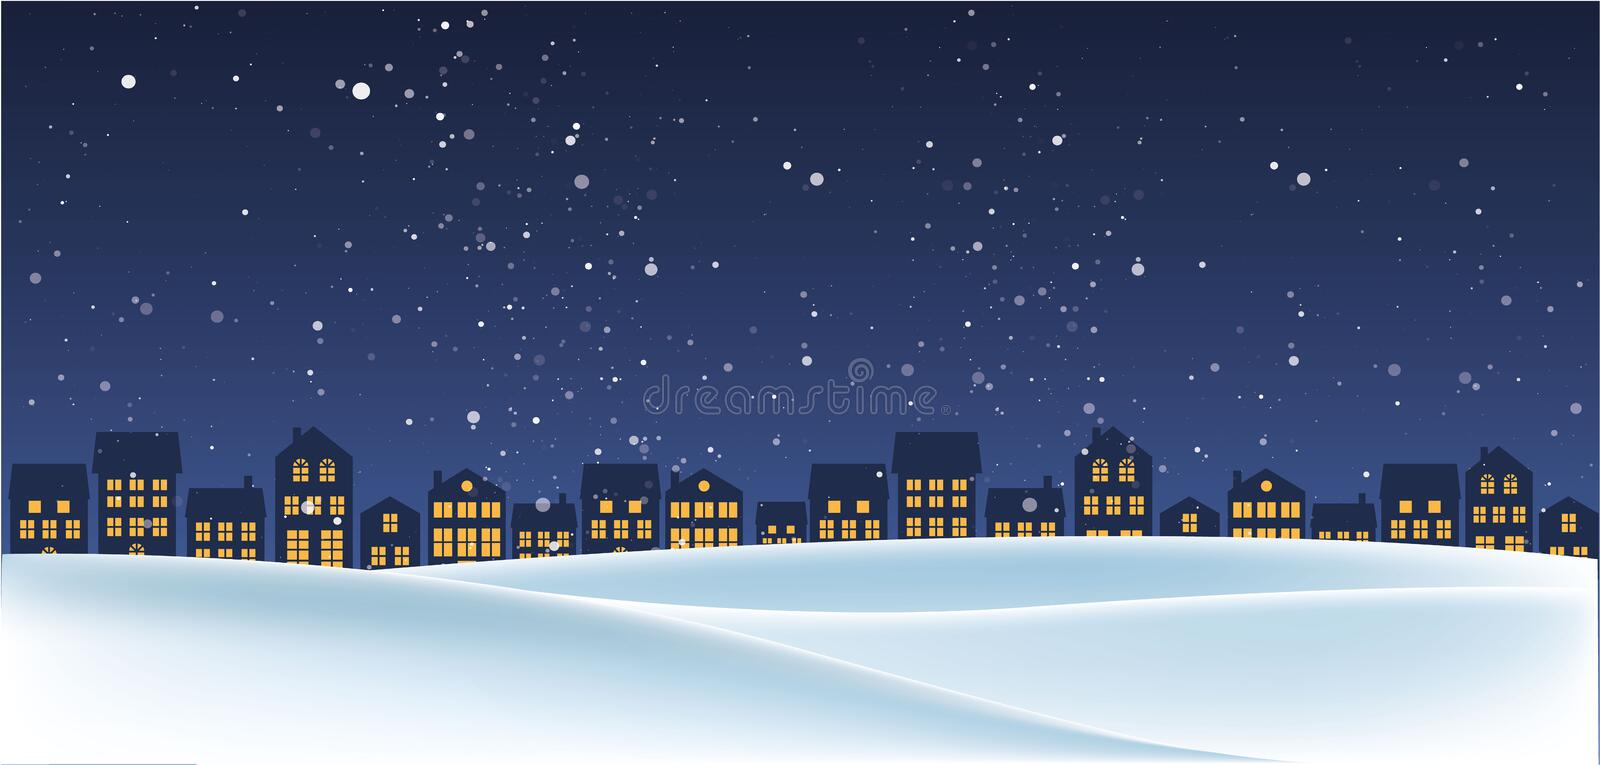 Christmas night landscape with houses stock photos